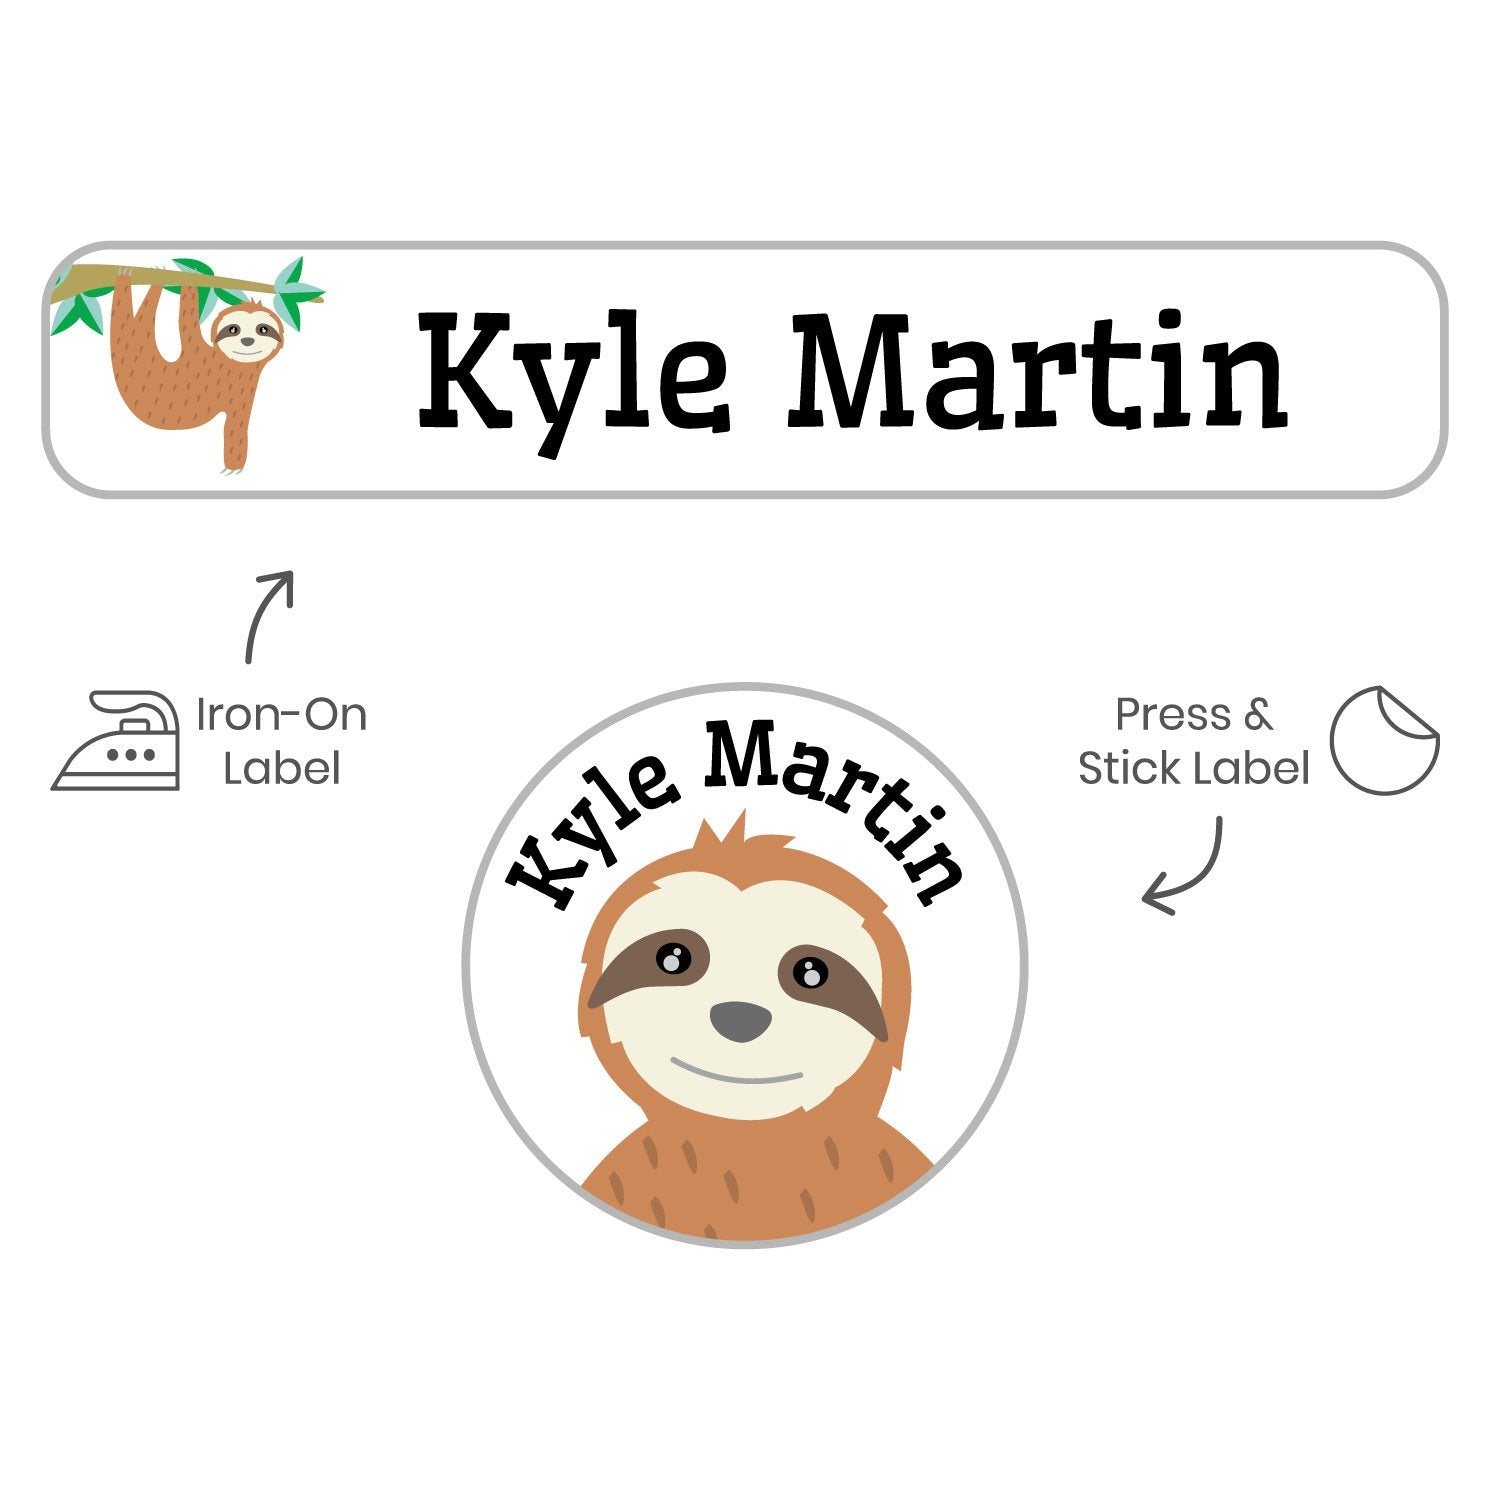 laundry safe kids stickers with sloth design